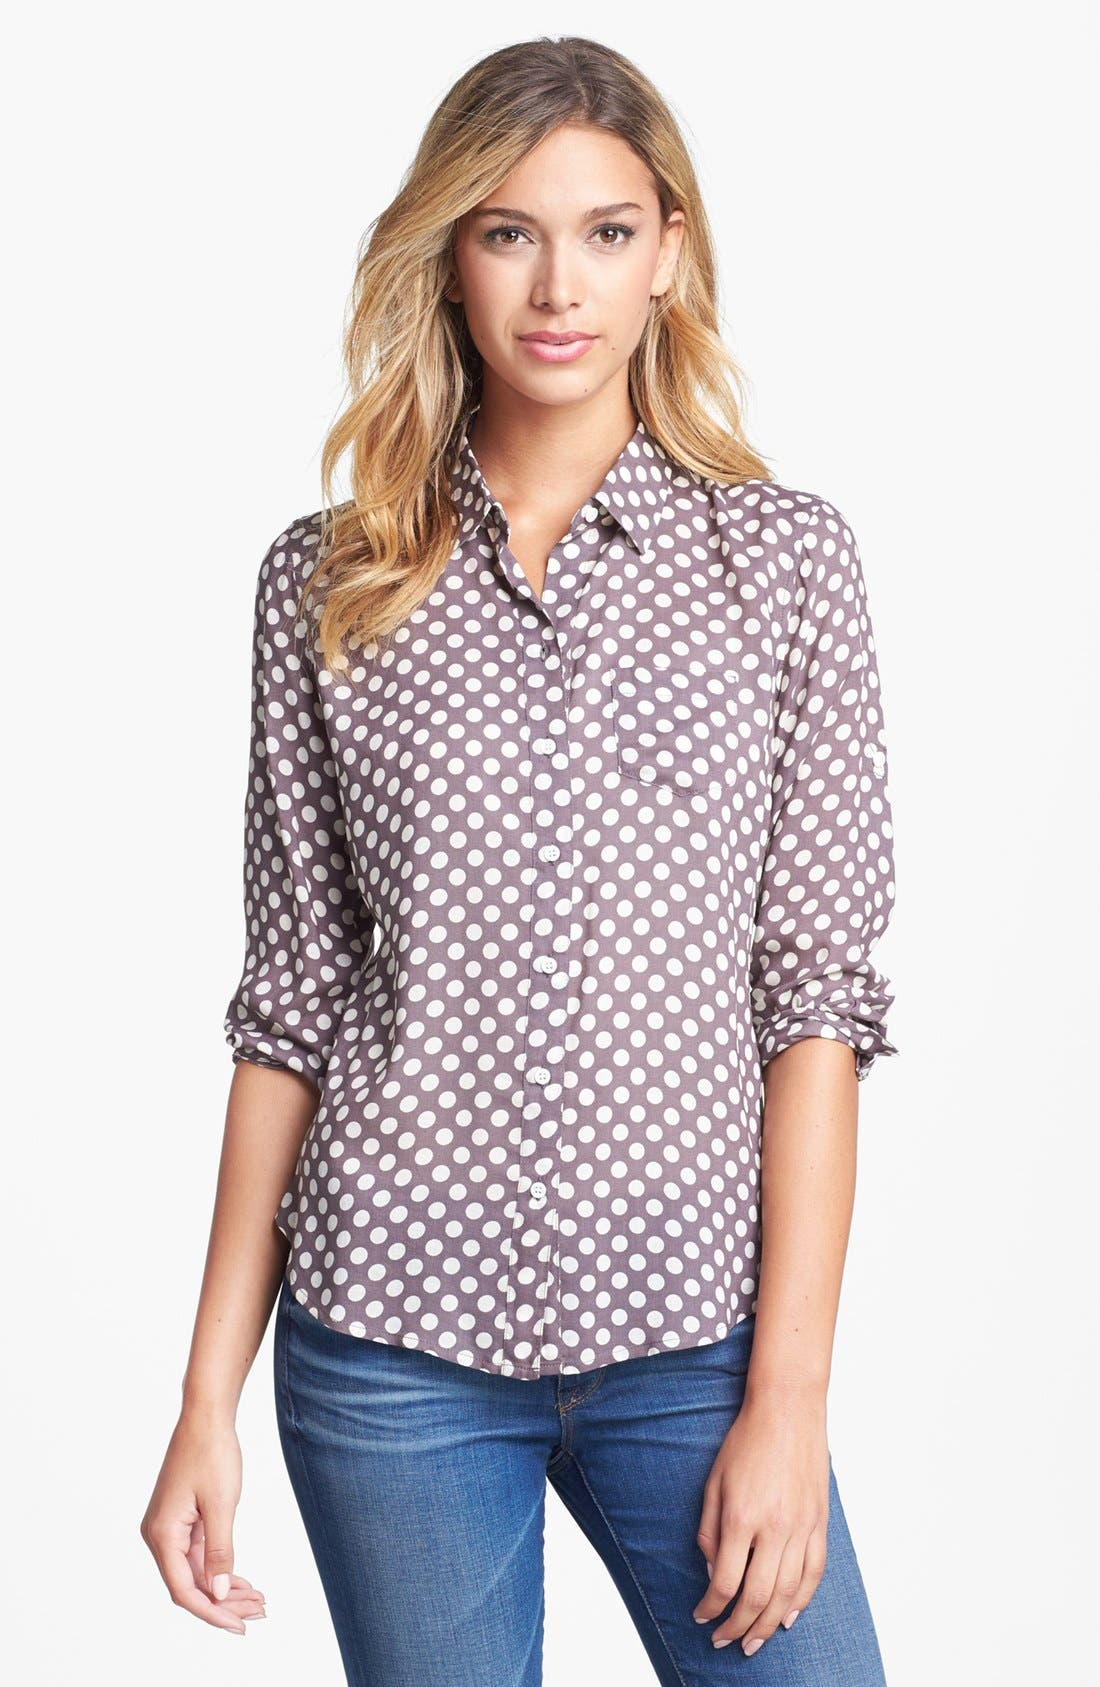 Alternate Image 1 Selected - Sandra Ingrish Polka Dot Roll Sleeve Blouse (Petite)